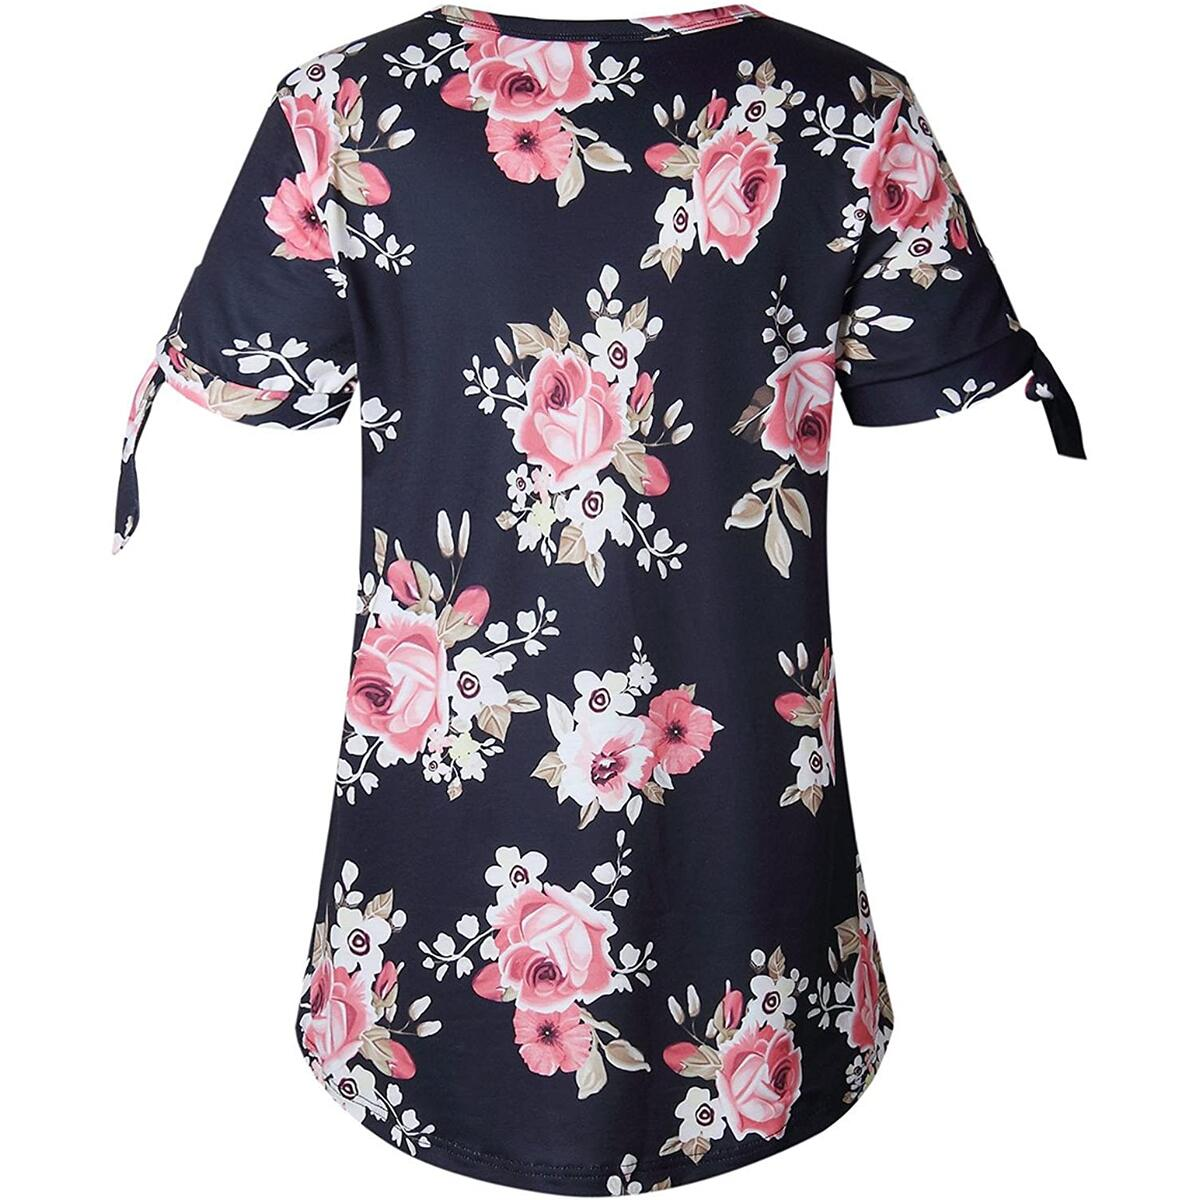 Alelly Women's Summer Casual O-Neck Tie Sleeve T Shirts Floral Print Loose Tee Tops